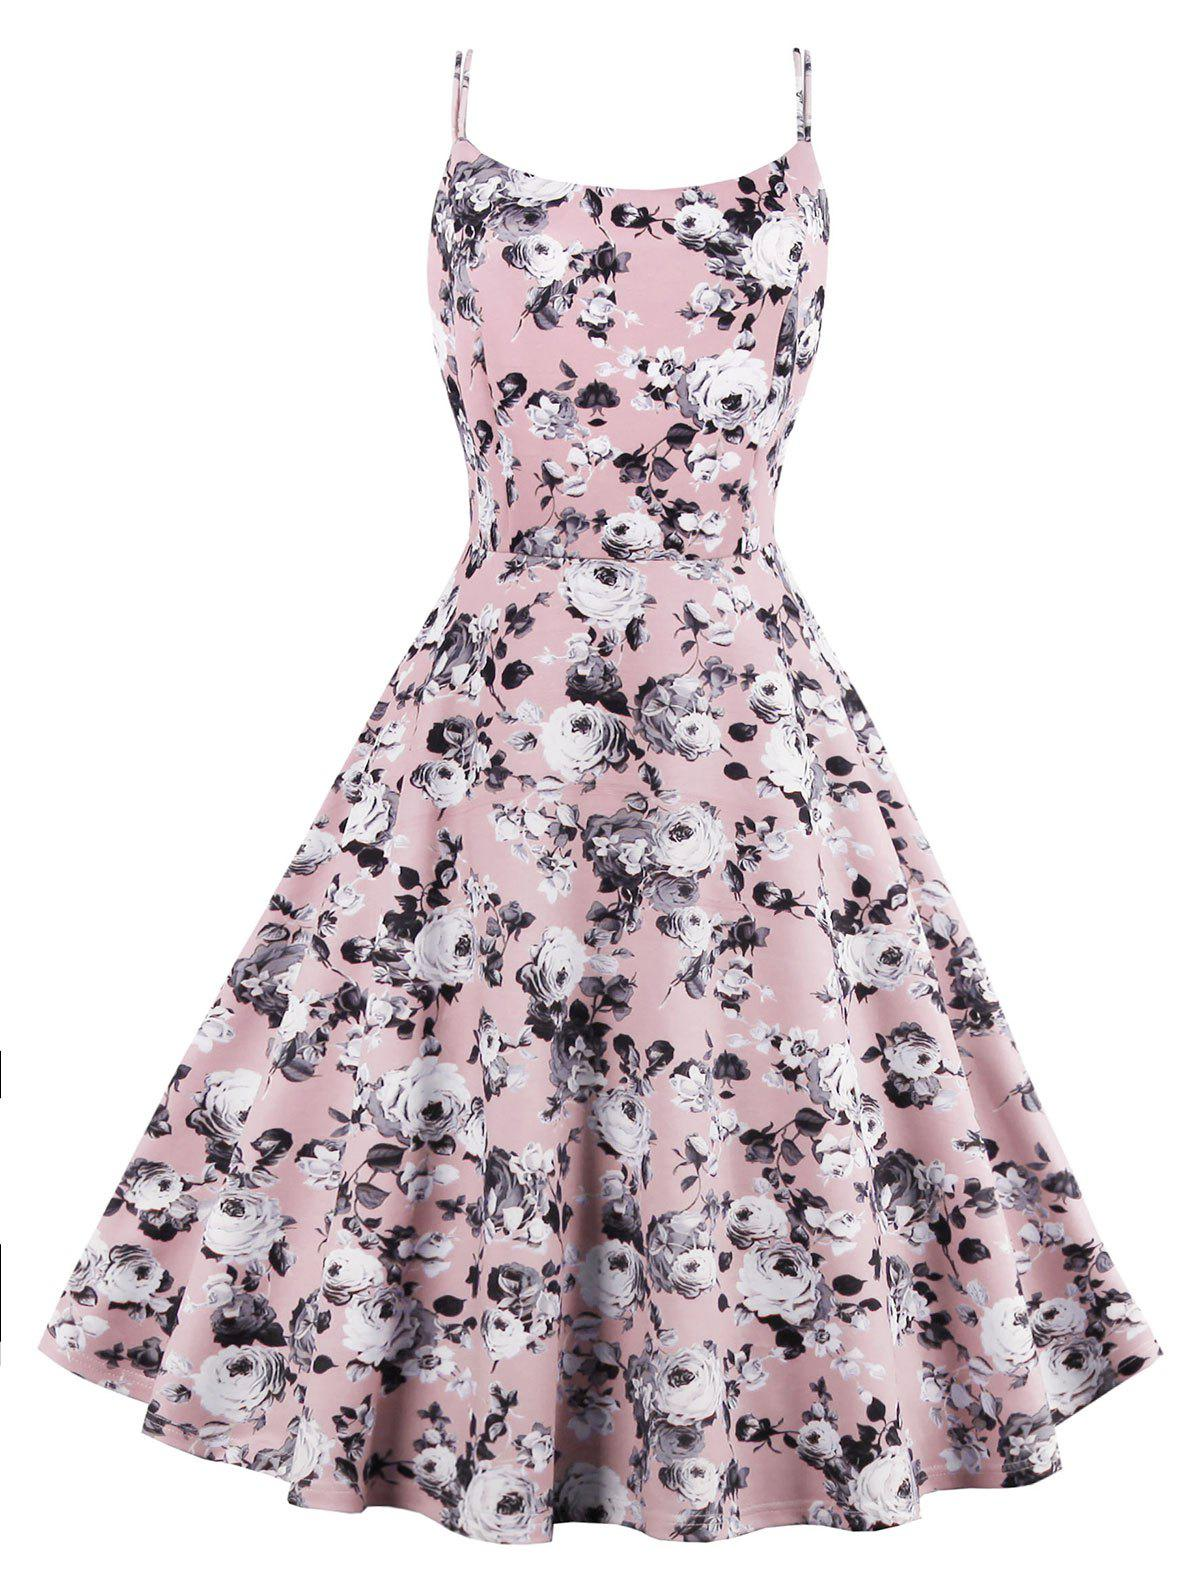 Roses Printed High Waist Flare Sun Dress - PINK L